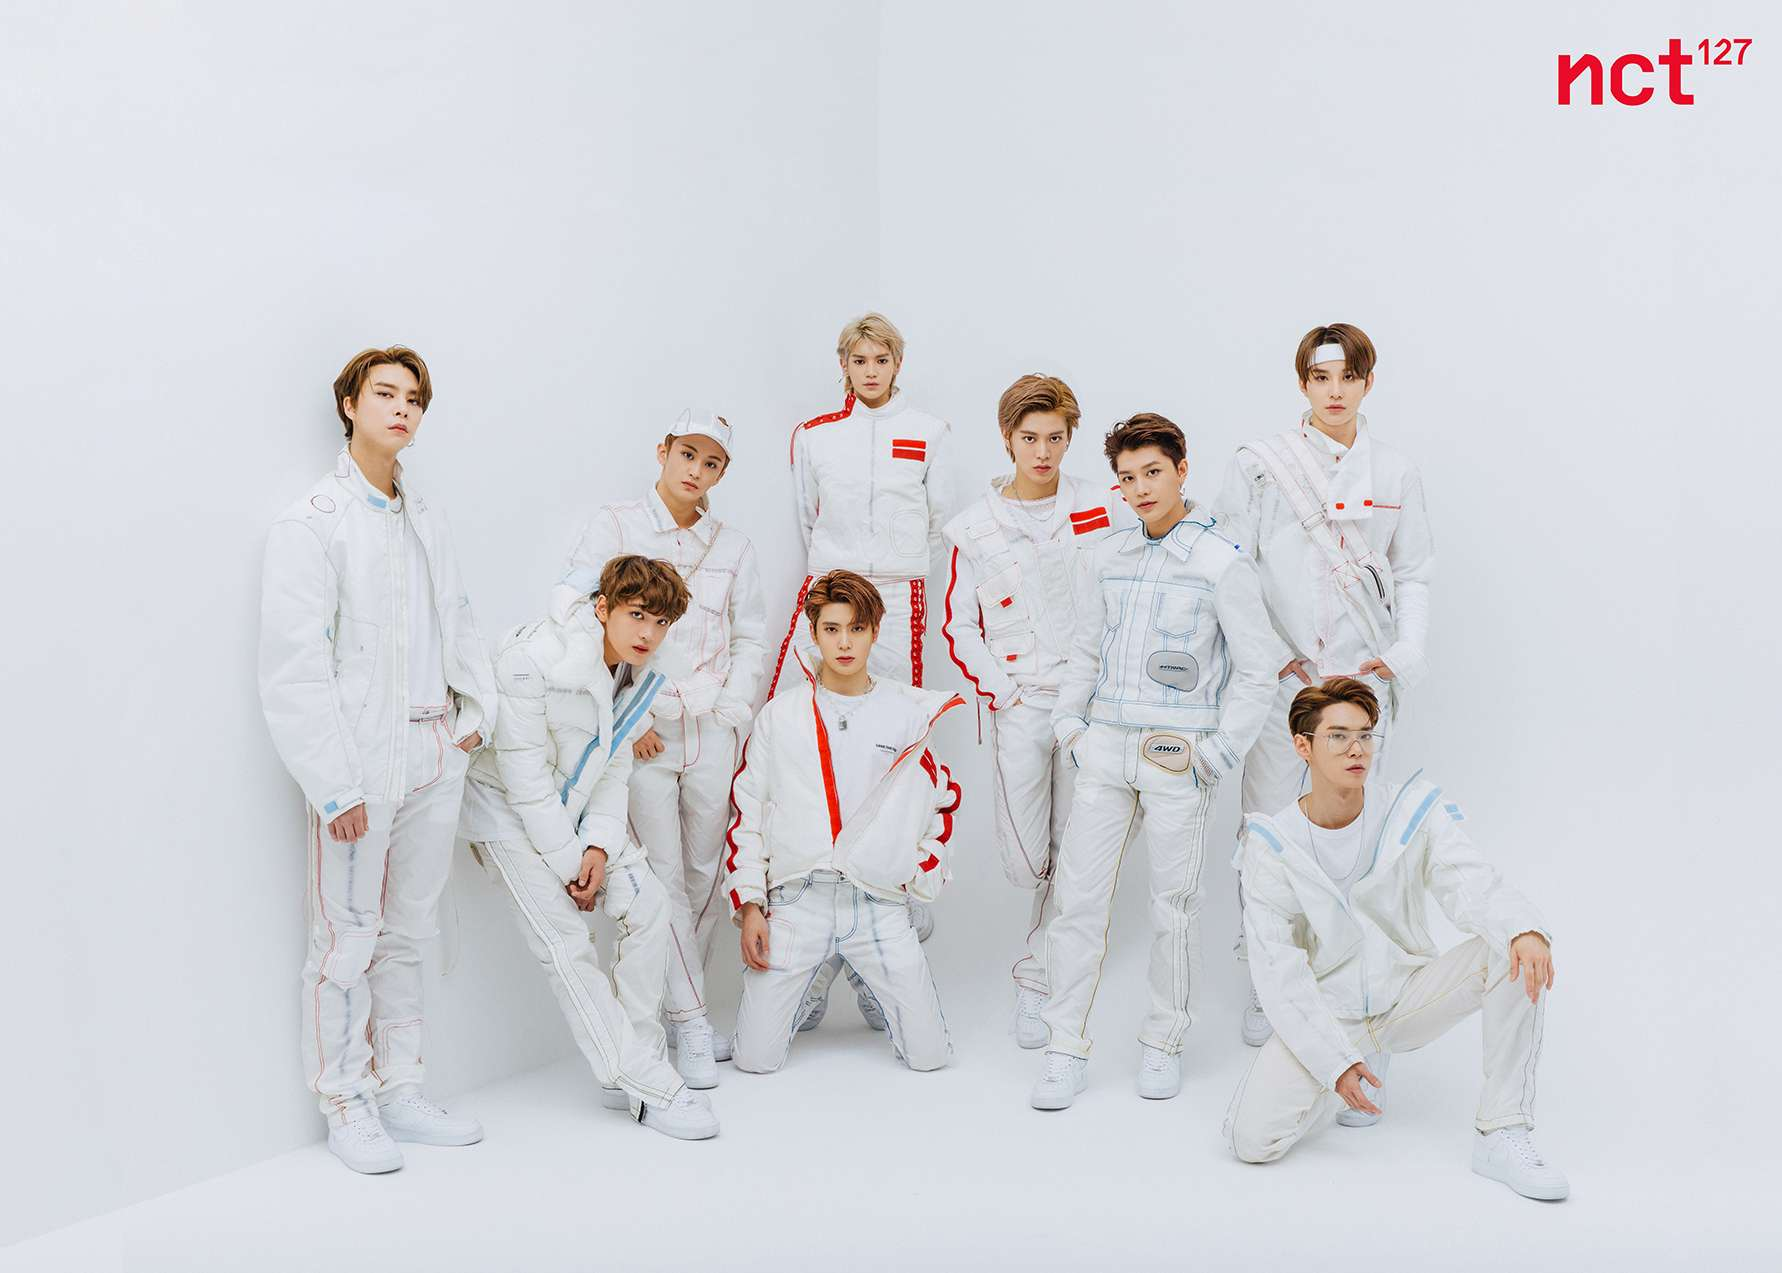 Korean Boyband NCT 127 To Perform At Singapore Indoor Stadium On 20 Jul